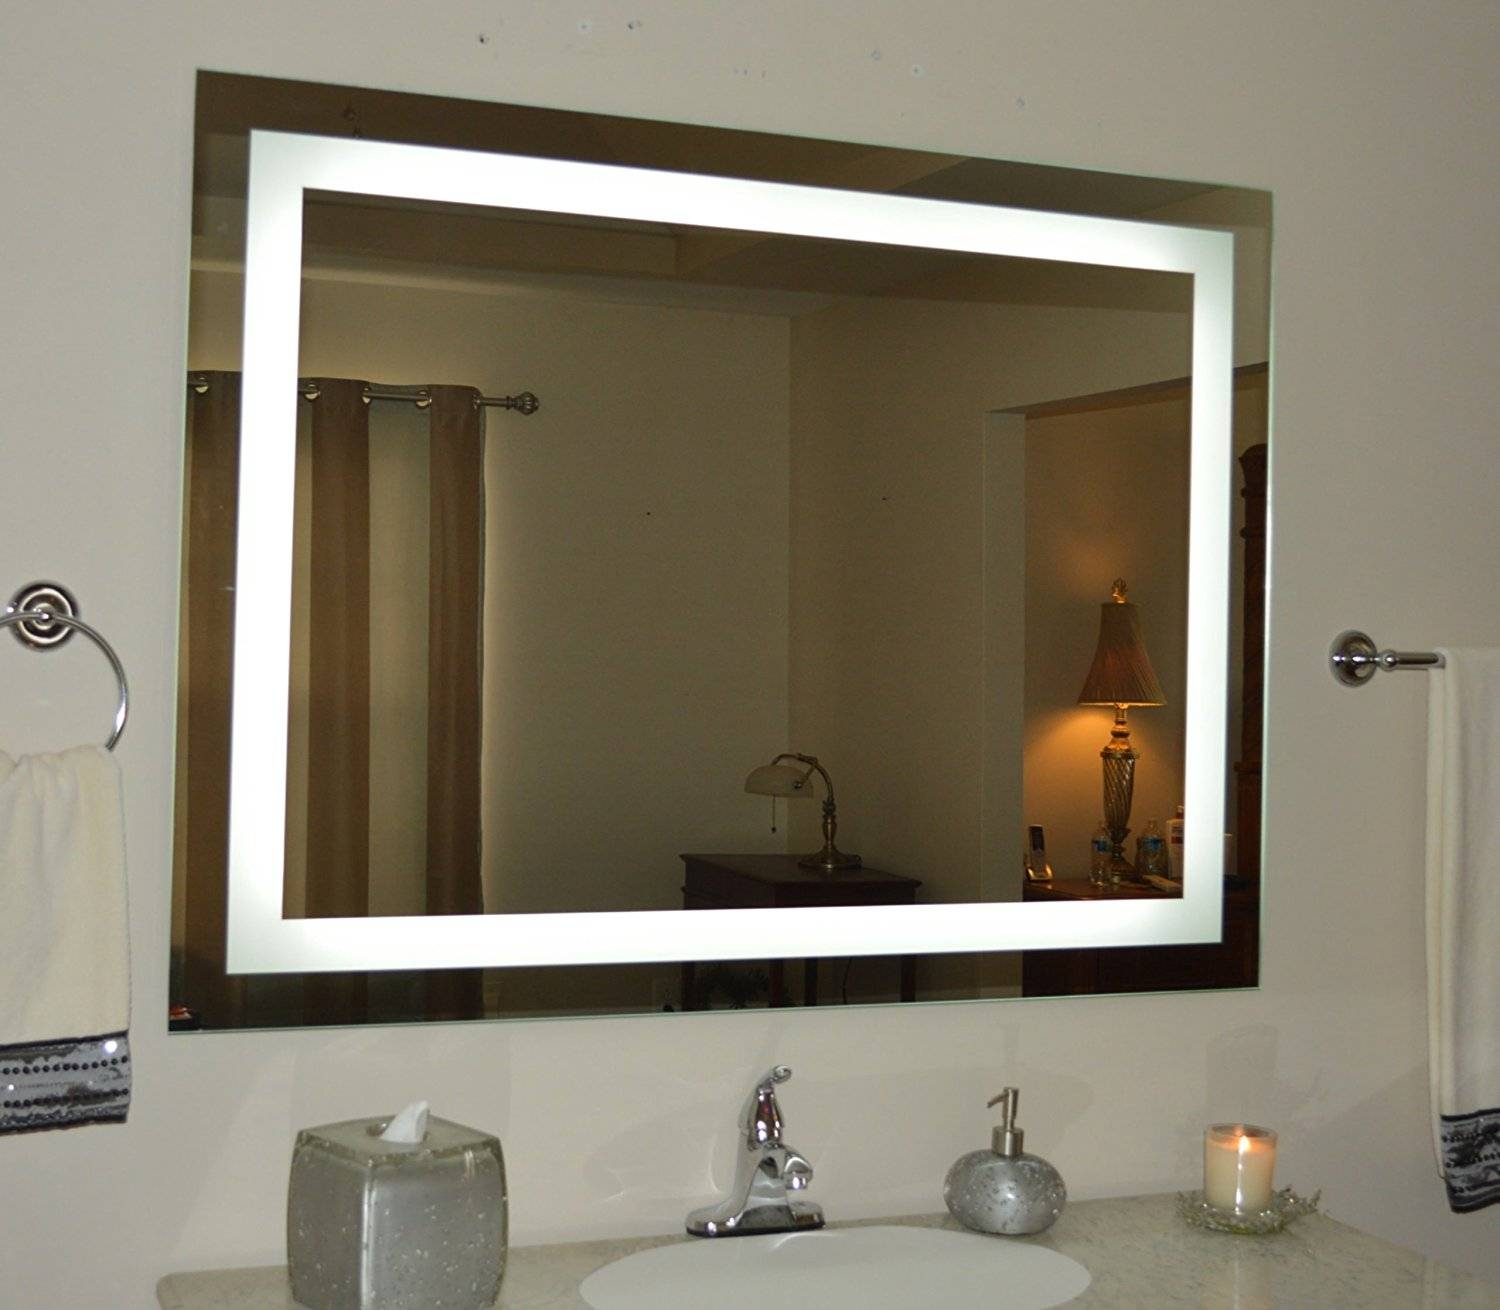 See The Difference With A Wall Mounted Light Up Mirror | Warisan Throughout Ceiling Light Mirrors (View 15 of 15)